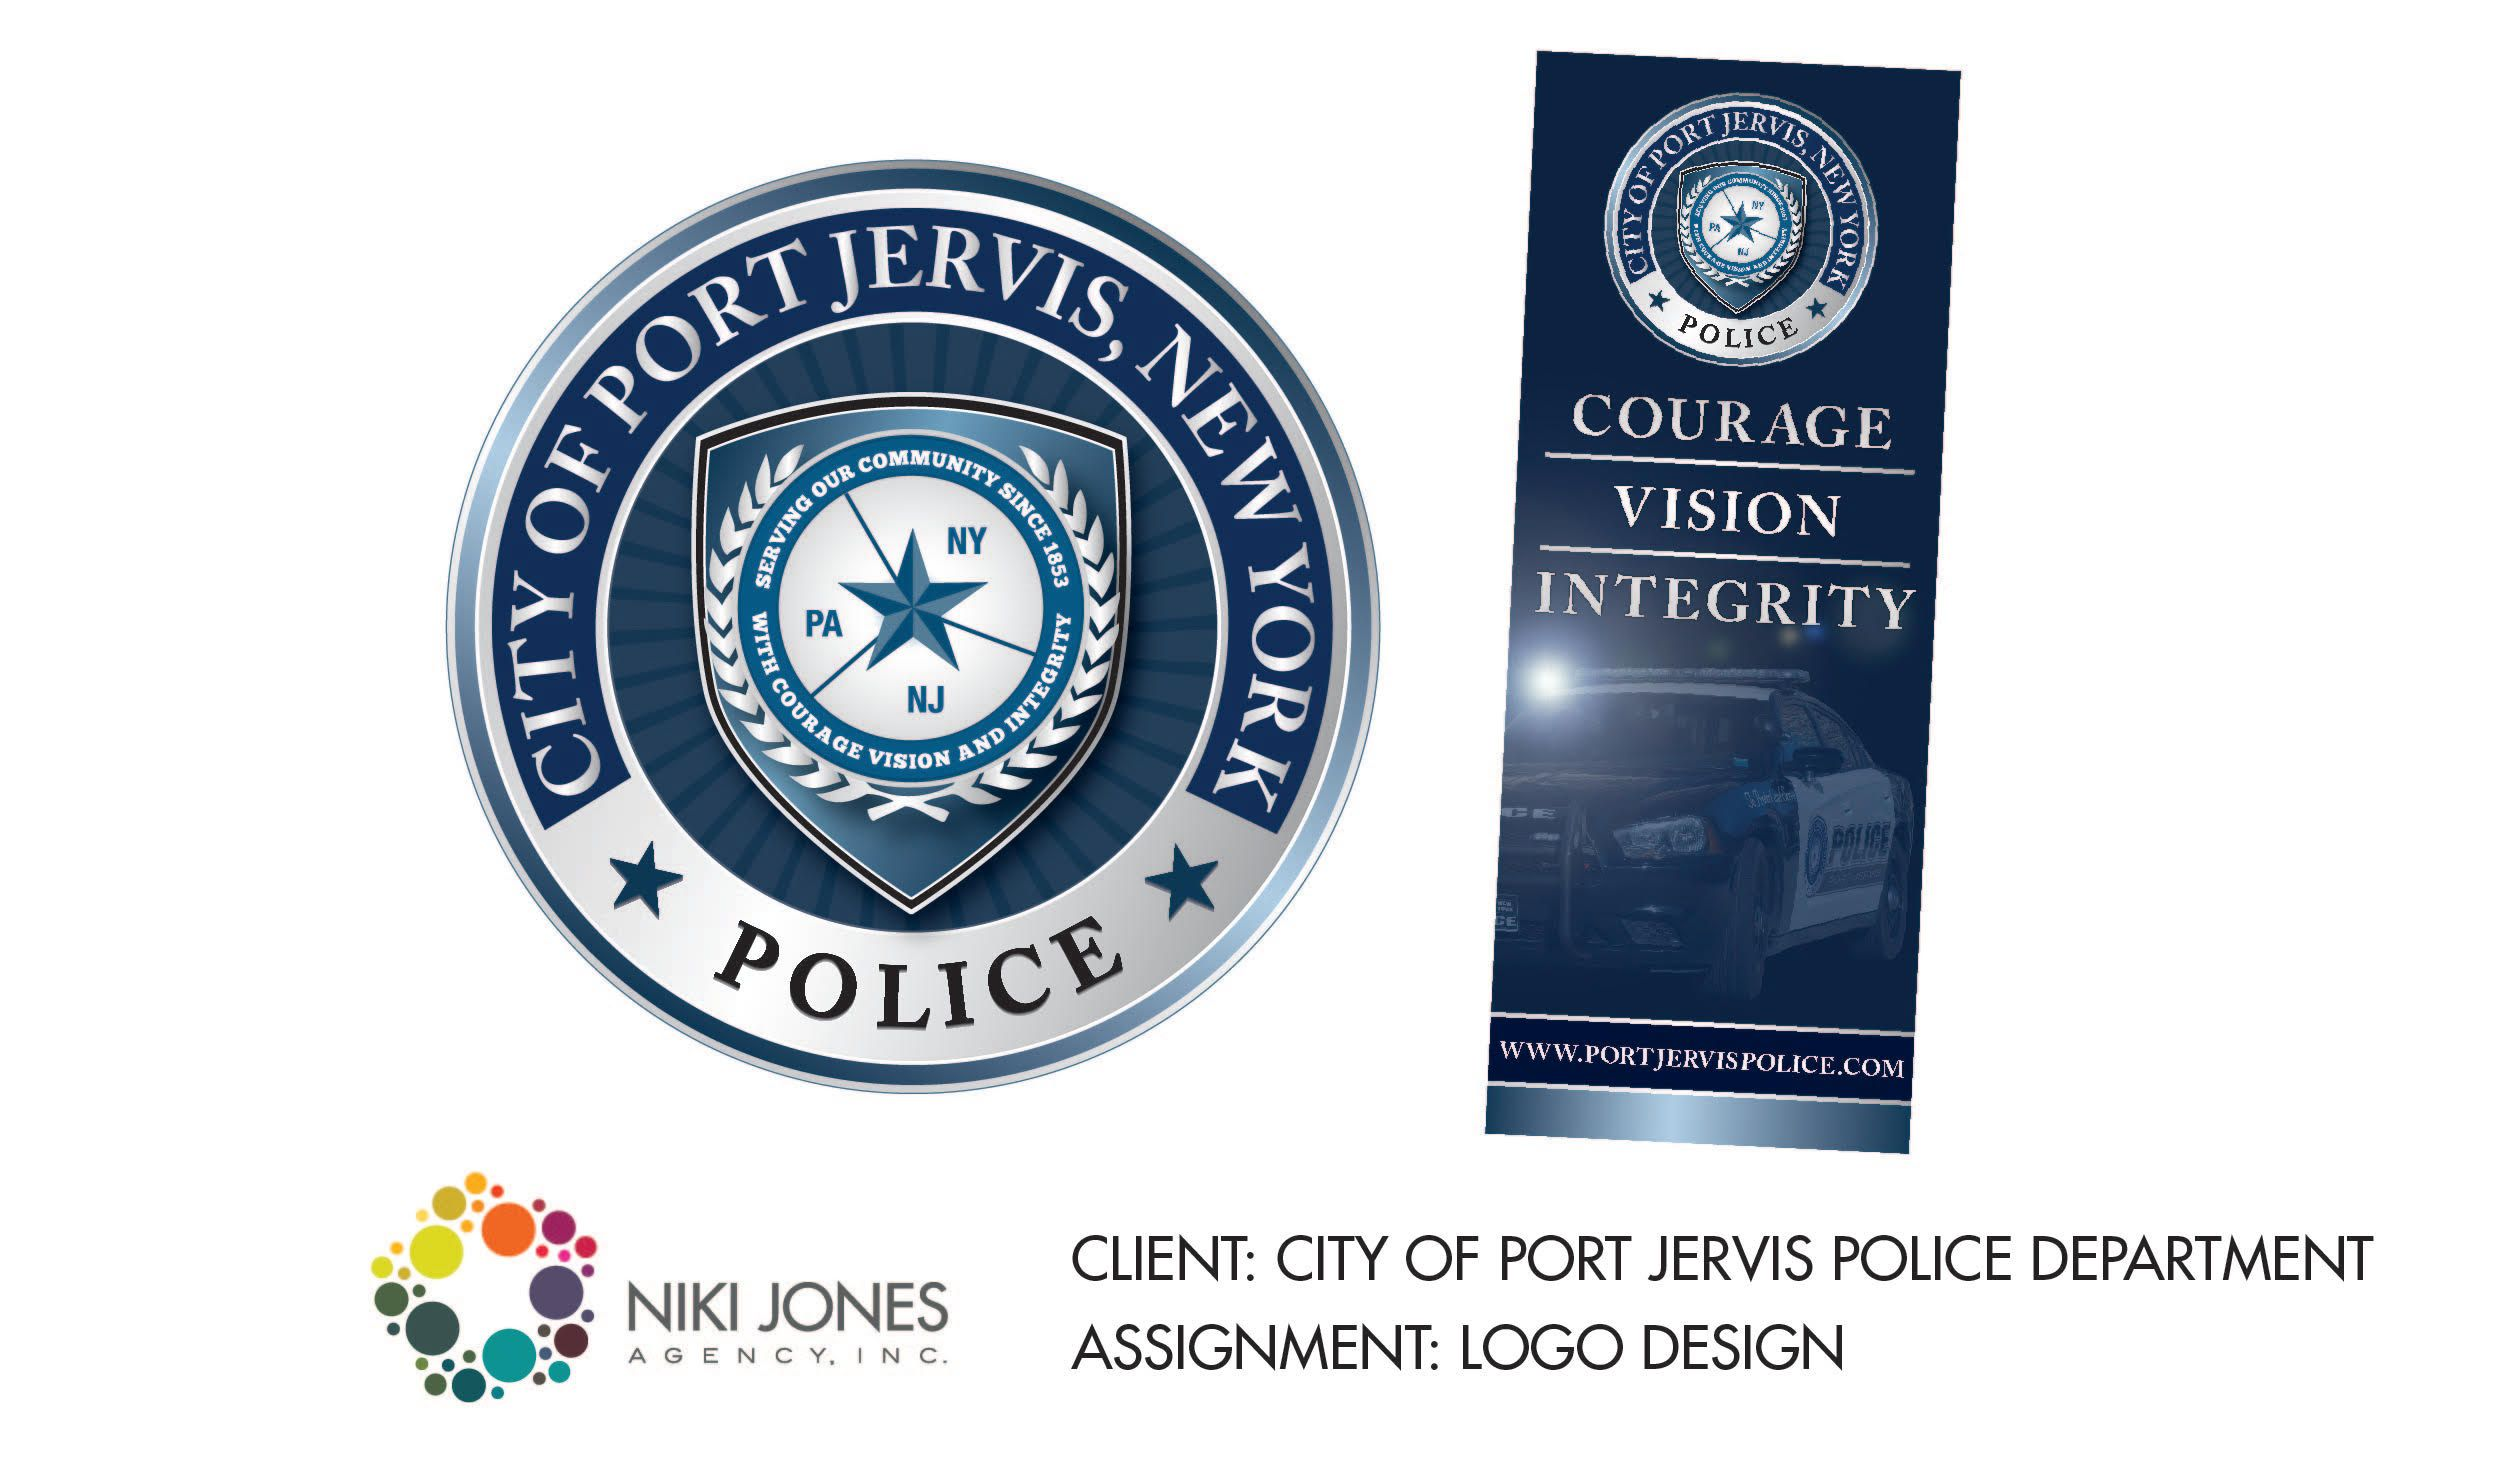 NJA Portfolio - Port Jervis Police Department Featured Work